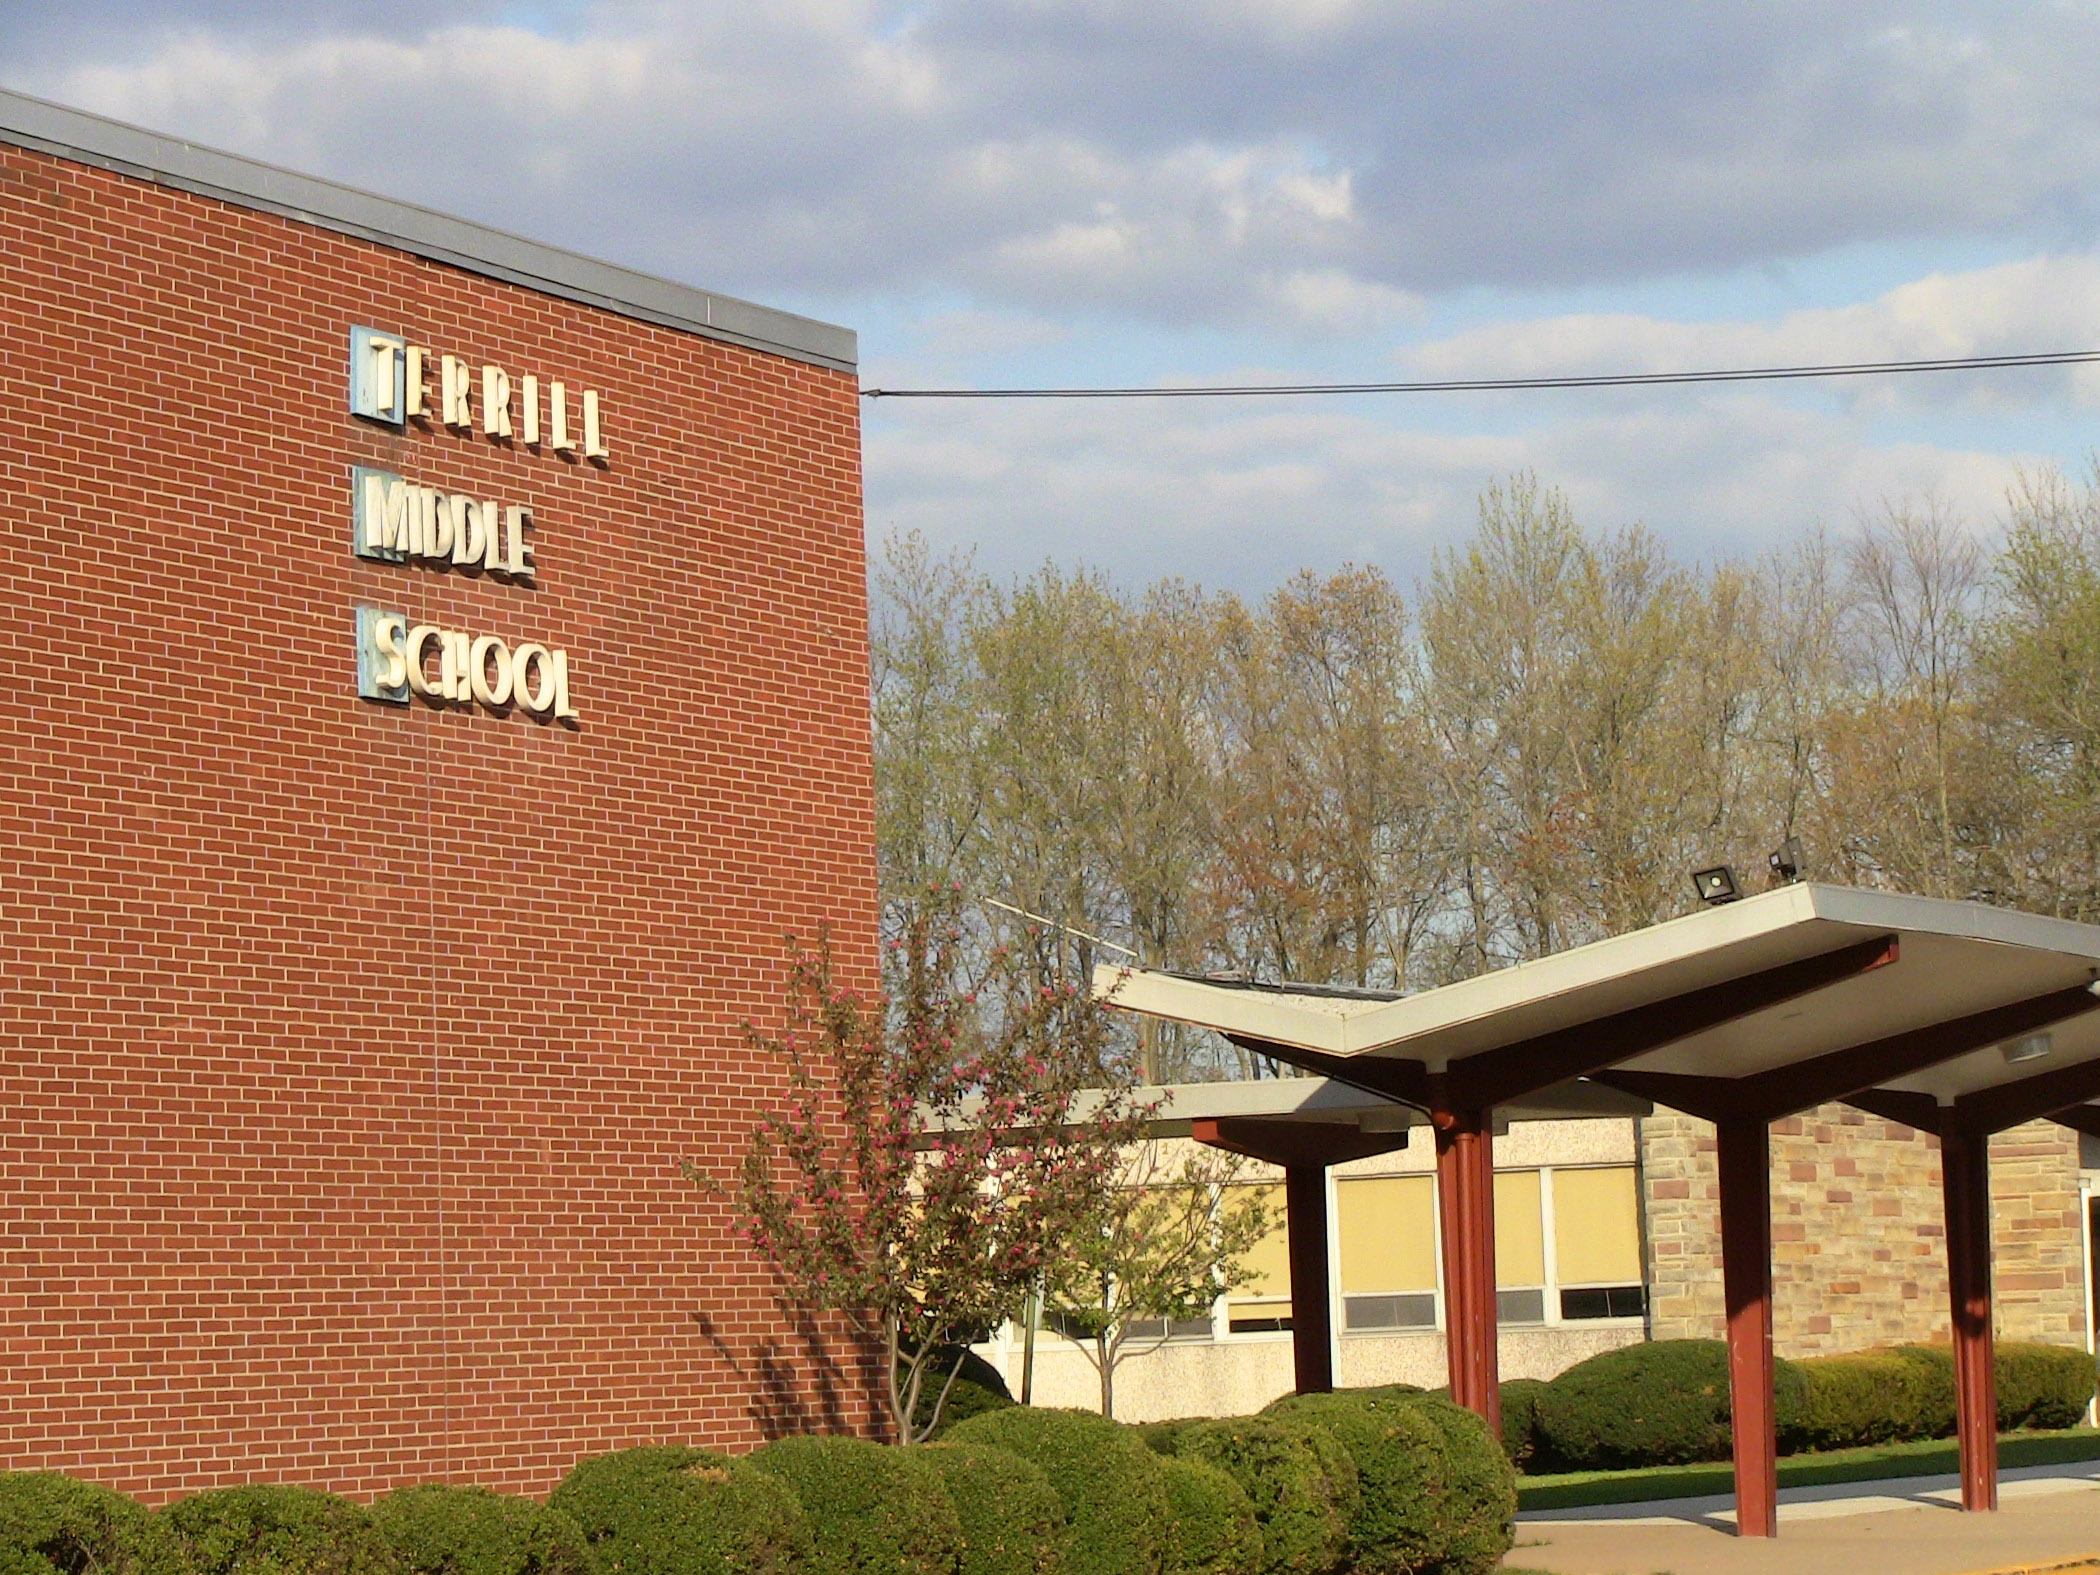 793905a62f273abe3891_Terrill_Middle_School_exterior.jpg